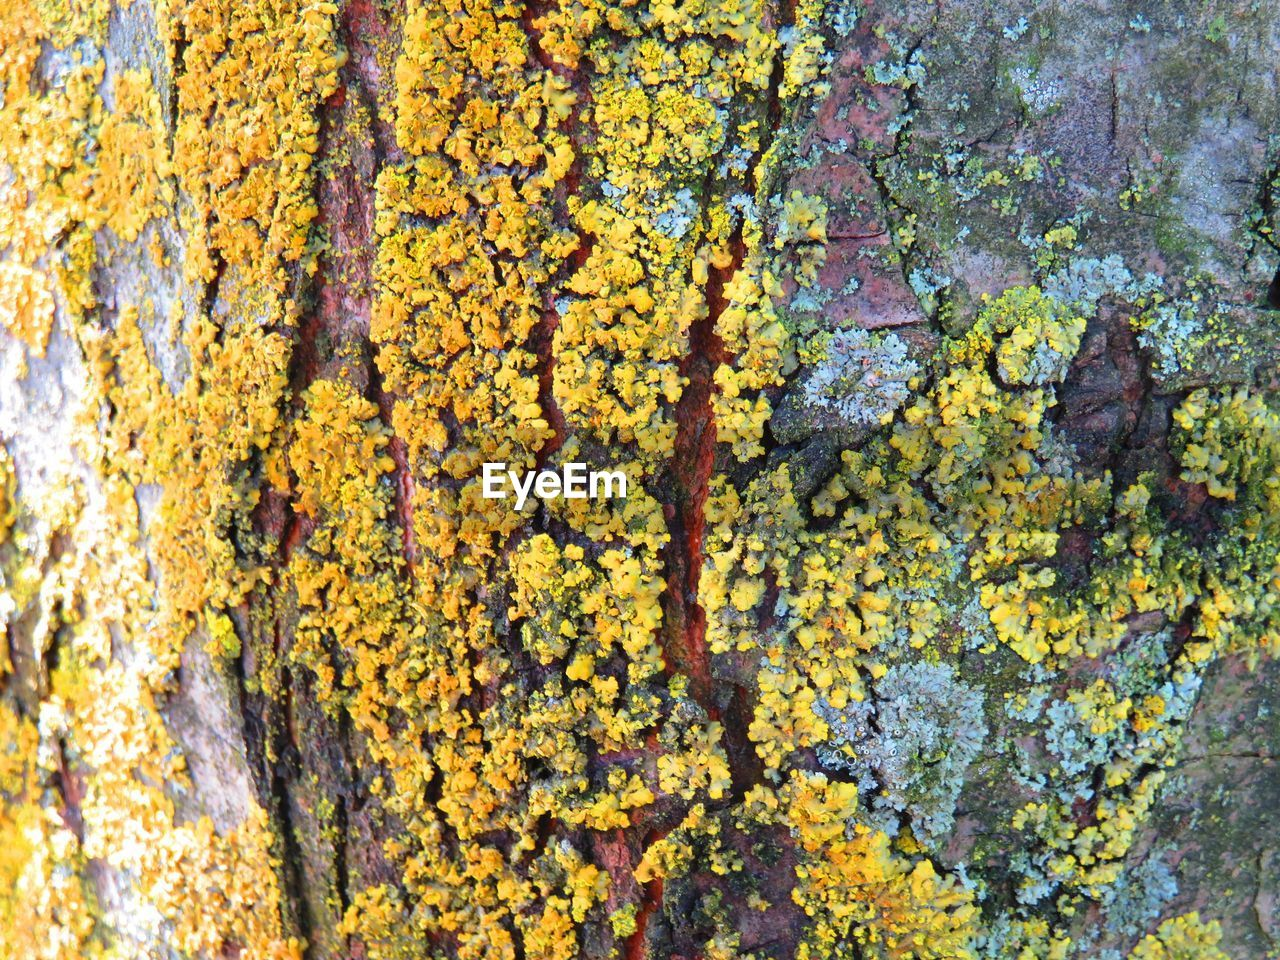 weathered, close-up, yellow, textured, full frame, lichen, backgrounds, rough, day, no people, paint, growth, outdoors, moss, tree trunk, leaf, ivy, fungus, tree, nature